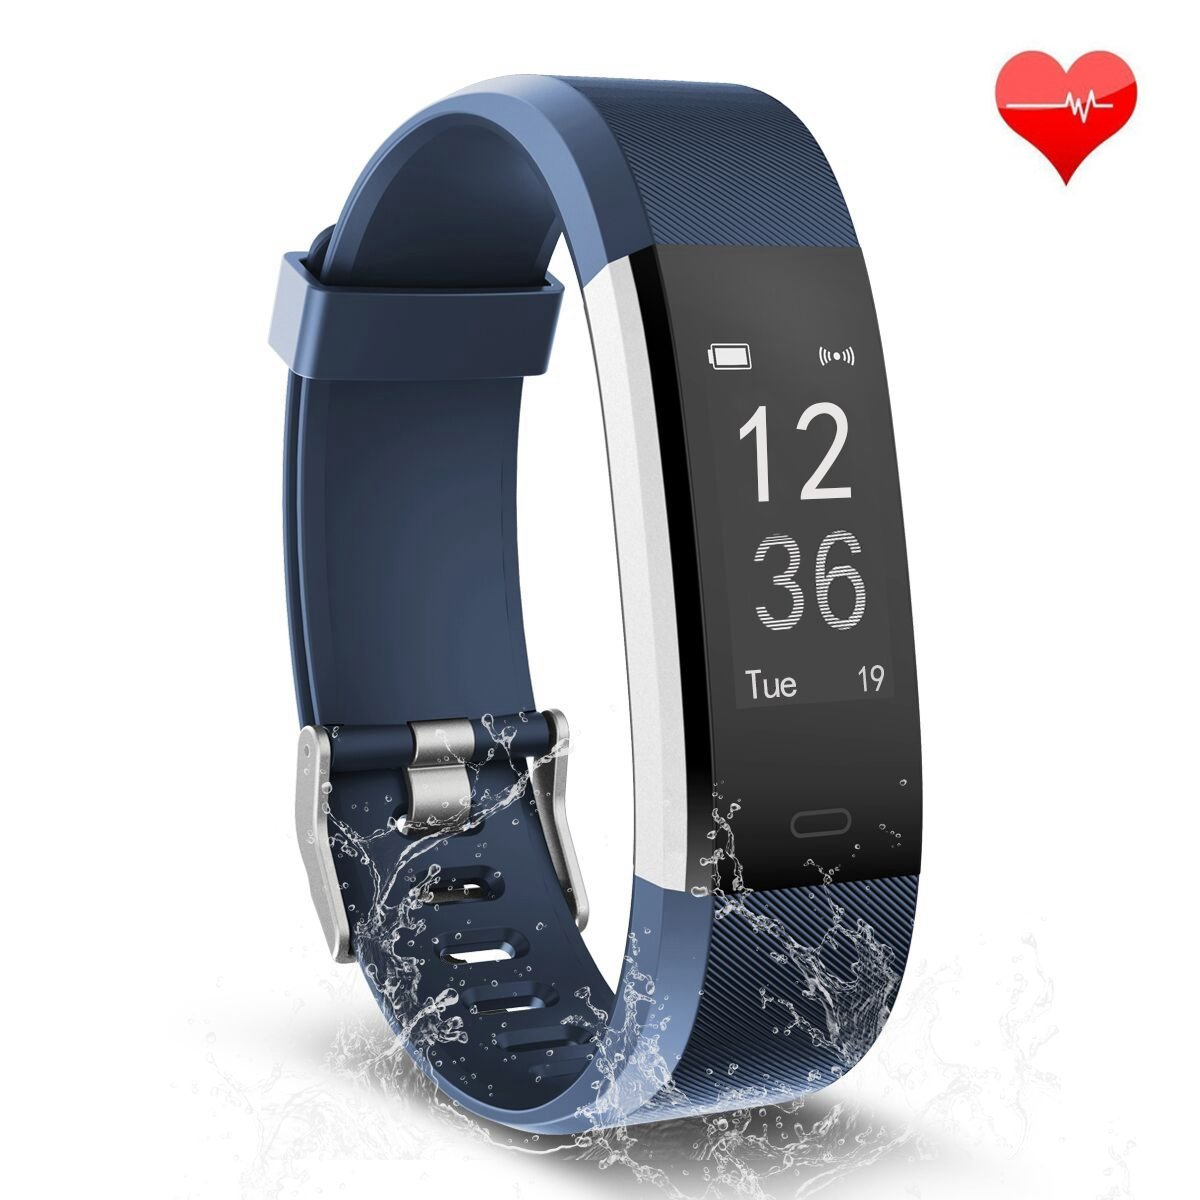 Fitness Tracker, Waterproof Activity Tracker Heart Rate Monitor Bluetooth Smart Watch